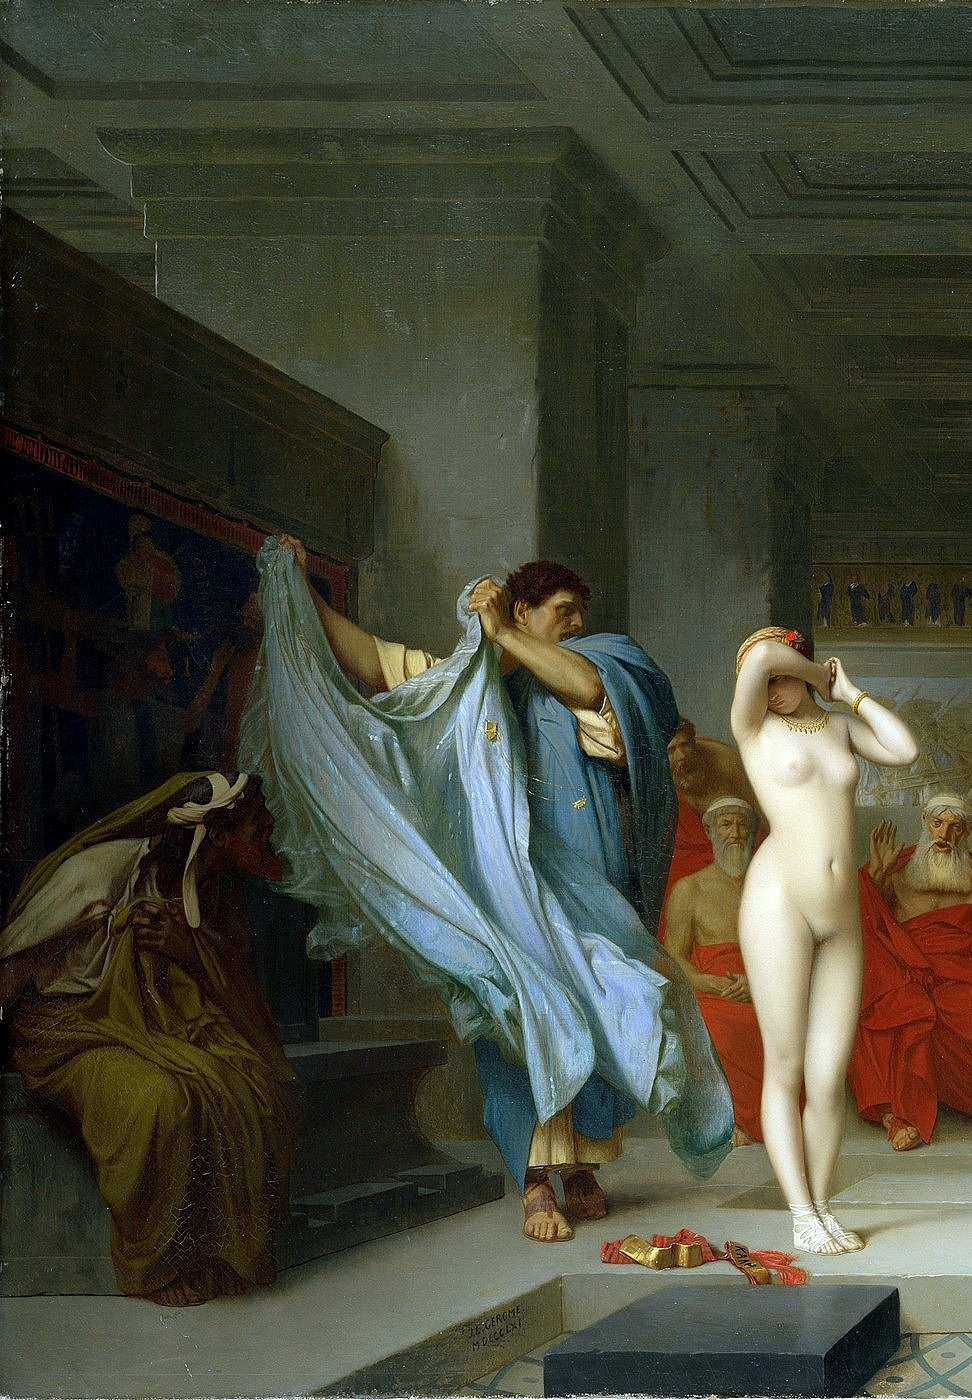 Phryne before the Areopagus, 1861, Jean-Léon Gérôme (11 May 1824 – 10 January 1904)